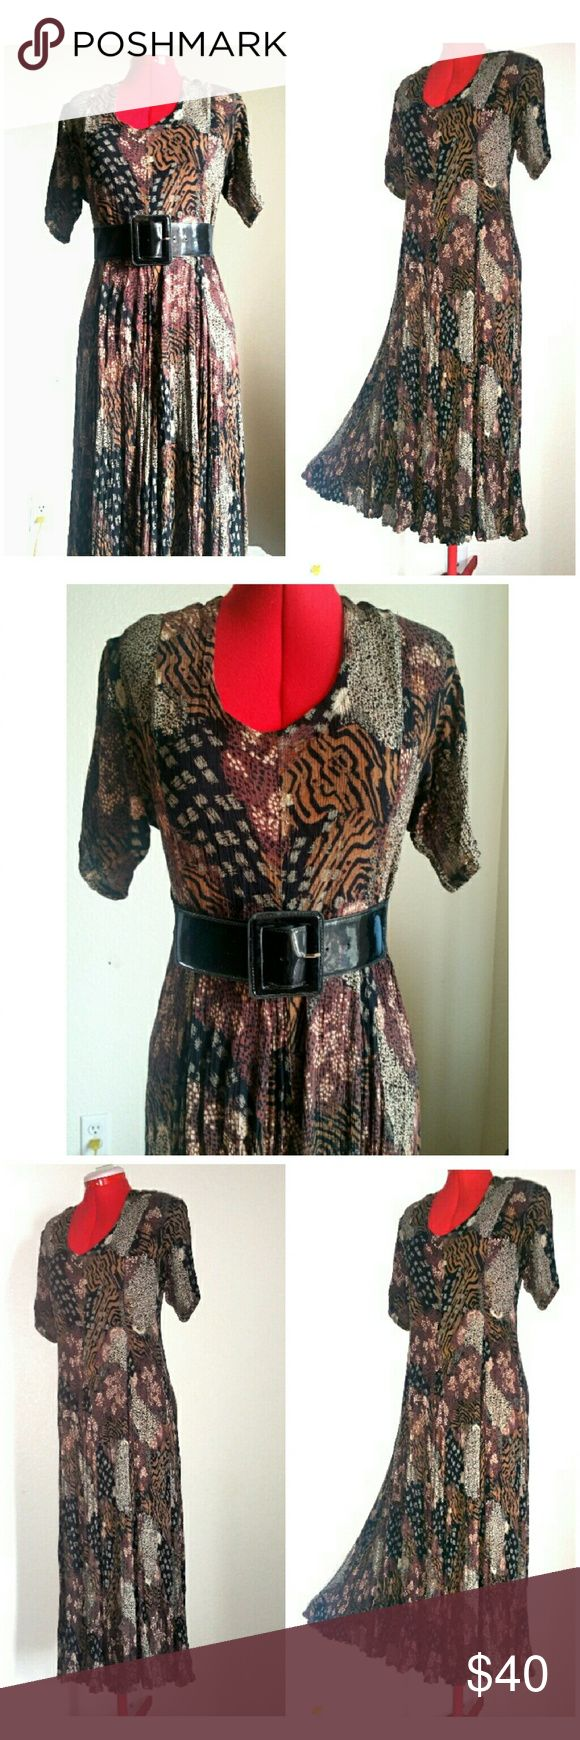 Vtg. Starina Animal Print Flowy Dress Festival This is a lovely crinkle gauze rayon dress from the 90s.  A dancing or festival must-have!  Midi/maxi length with short sleeves and is pull-over style.  Starina, size small.  Absolutely perfect, no issues and looks barely used. Vintage Dresses Midi